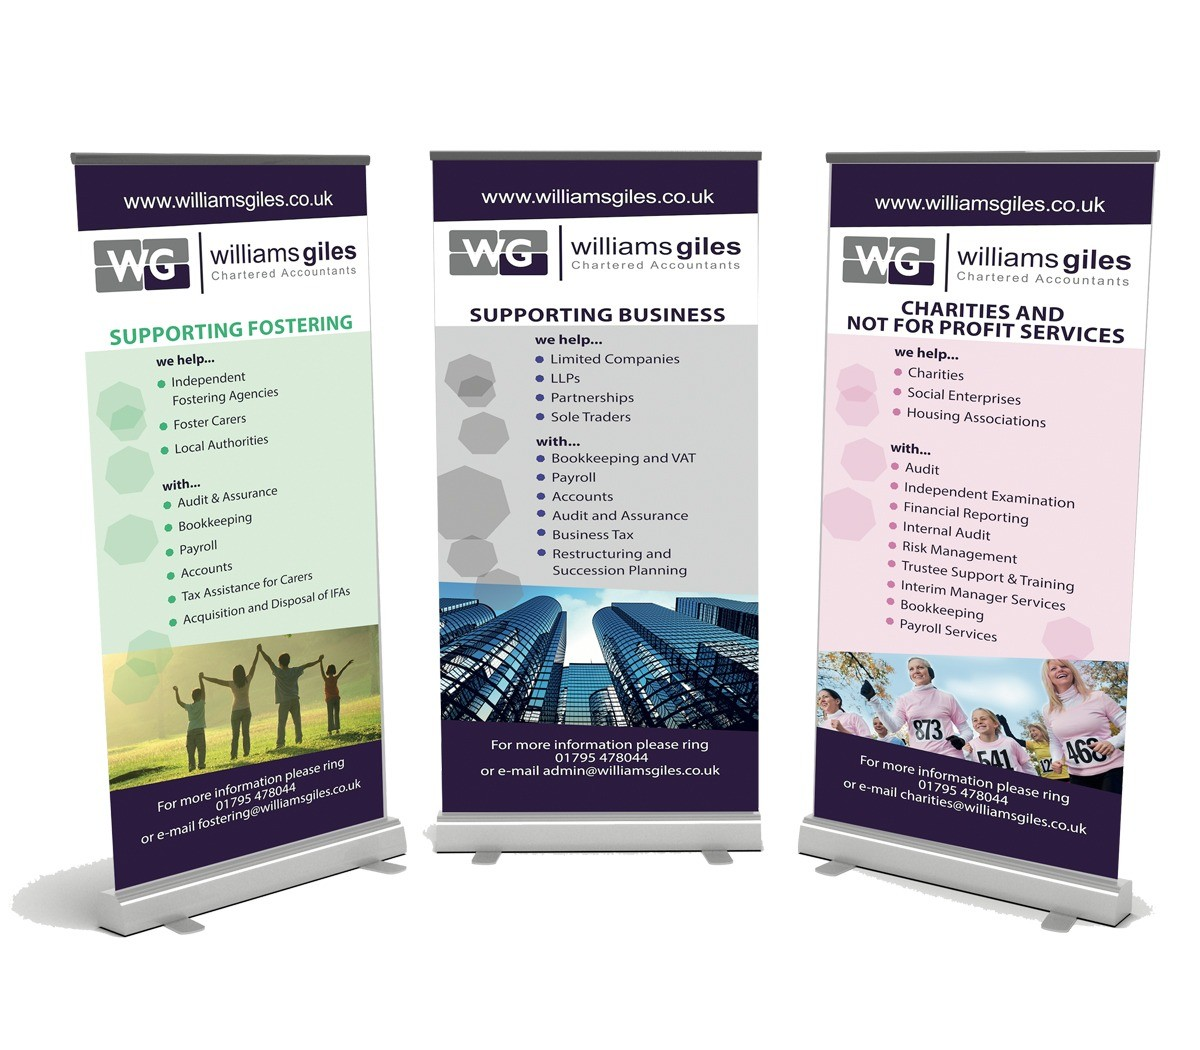 An image showing Williams Giles's exhibition pull-up banners.